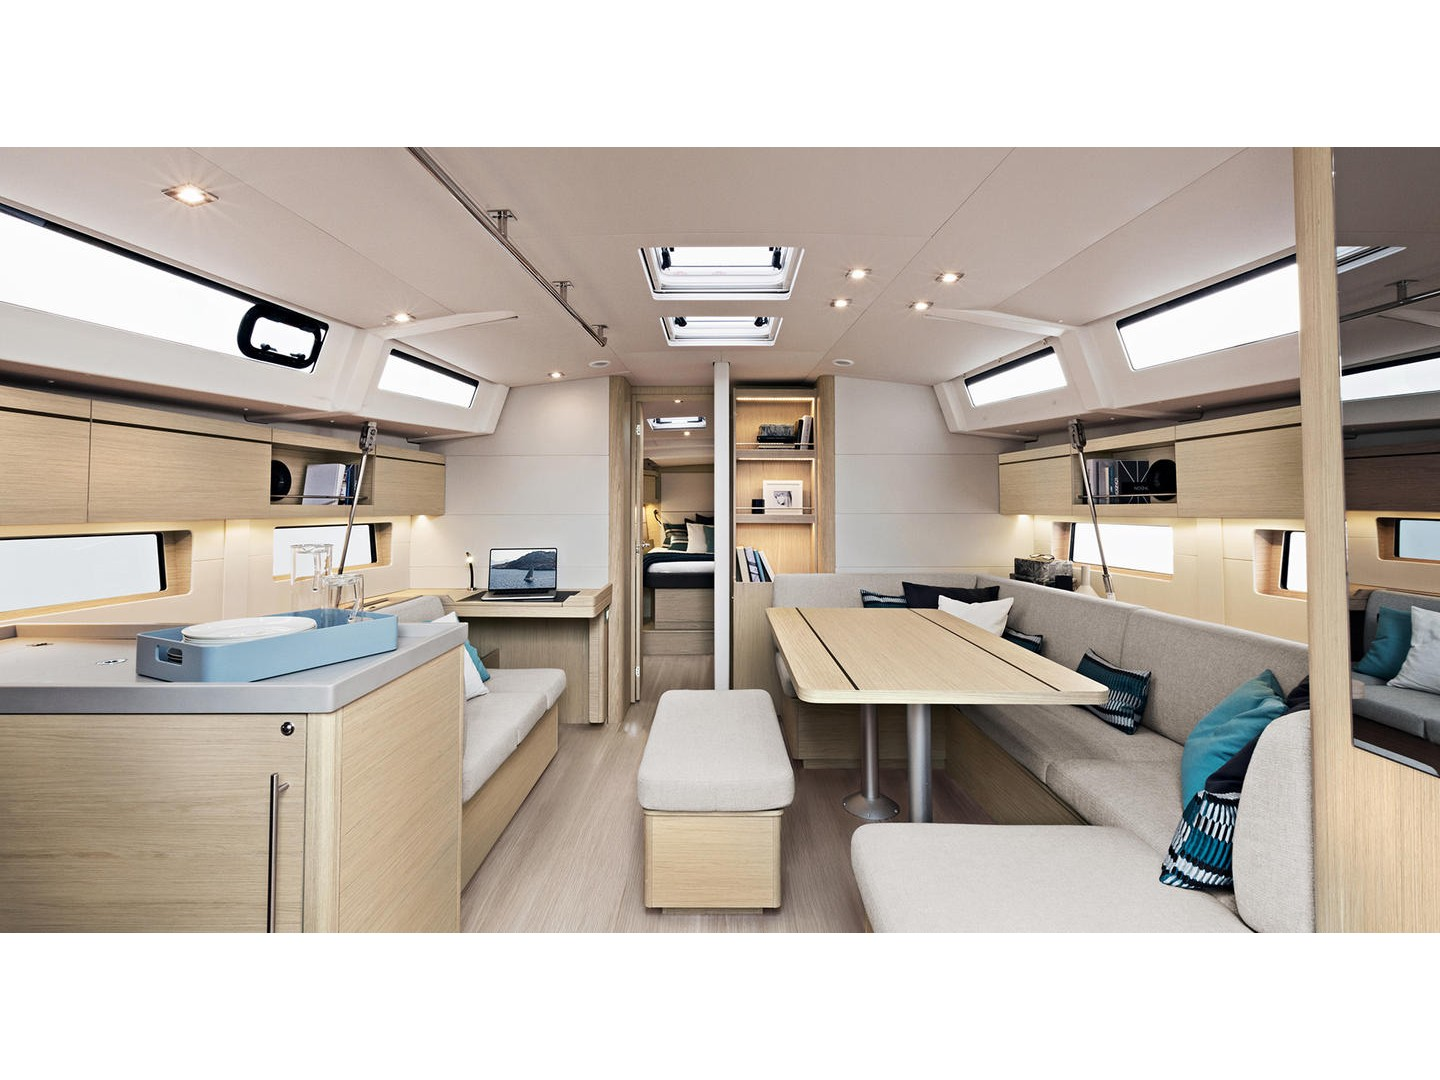 Oceanis 46.1 / 3 cabins (Lady Relax) Interior image - 1